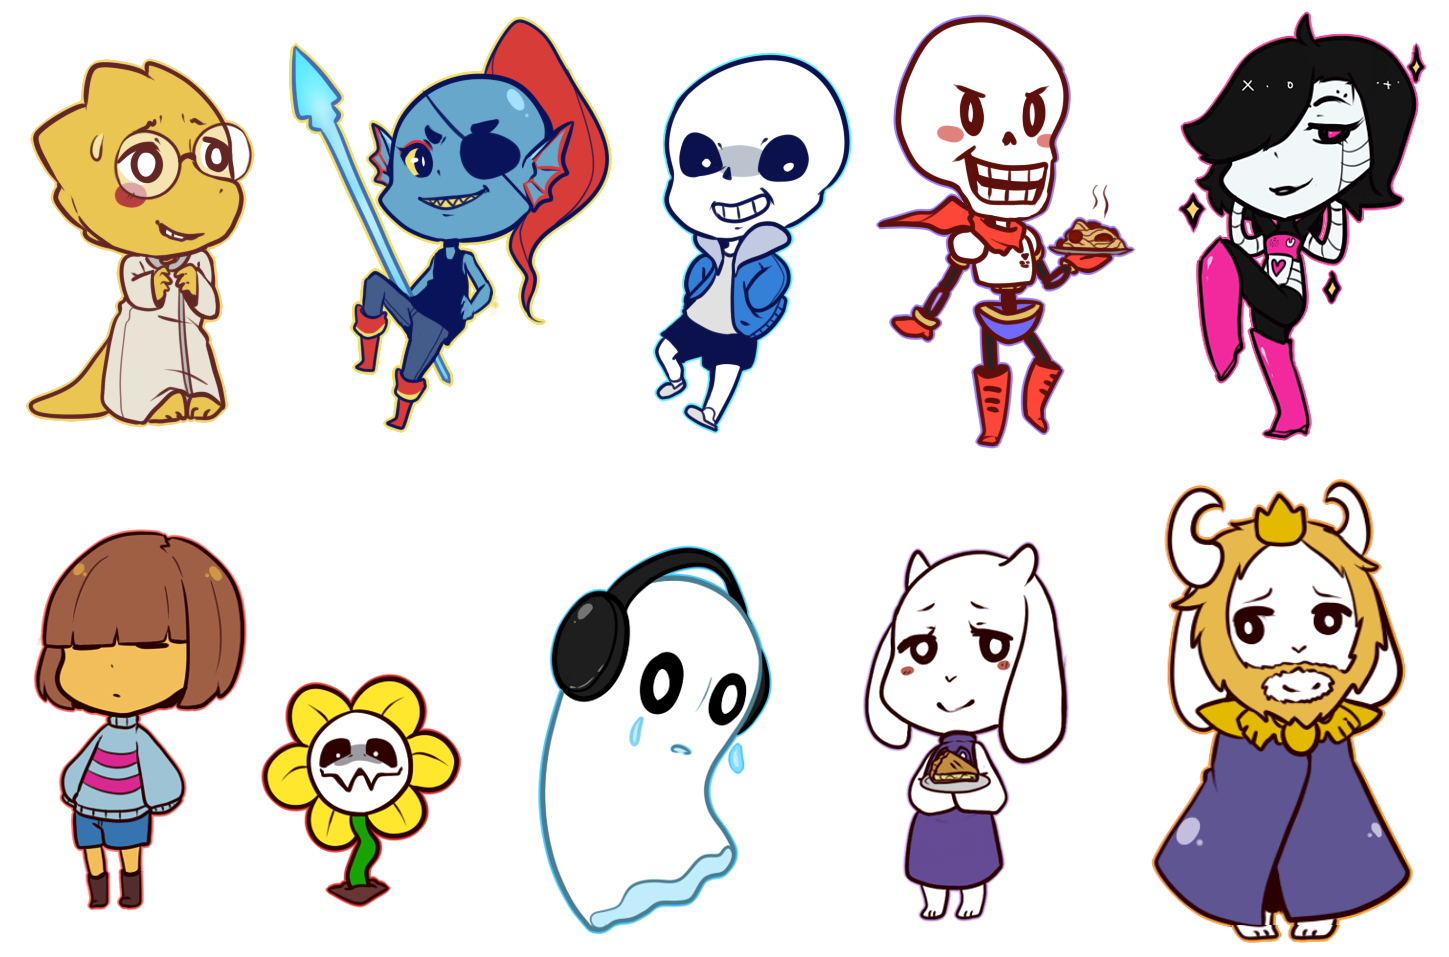 Undertale Characters by PaperCactus 1449x957